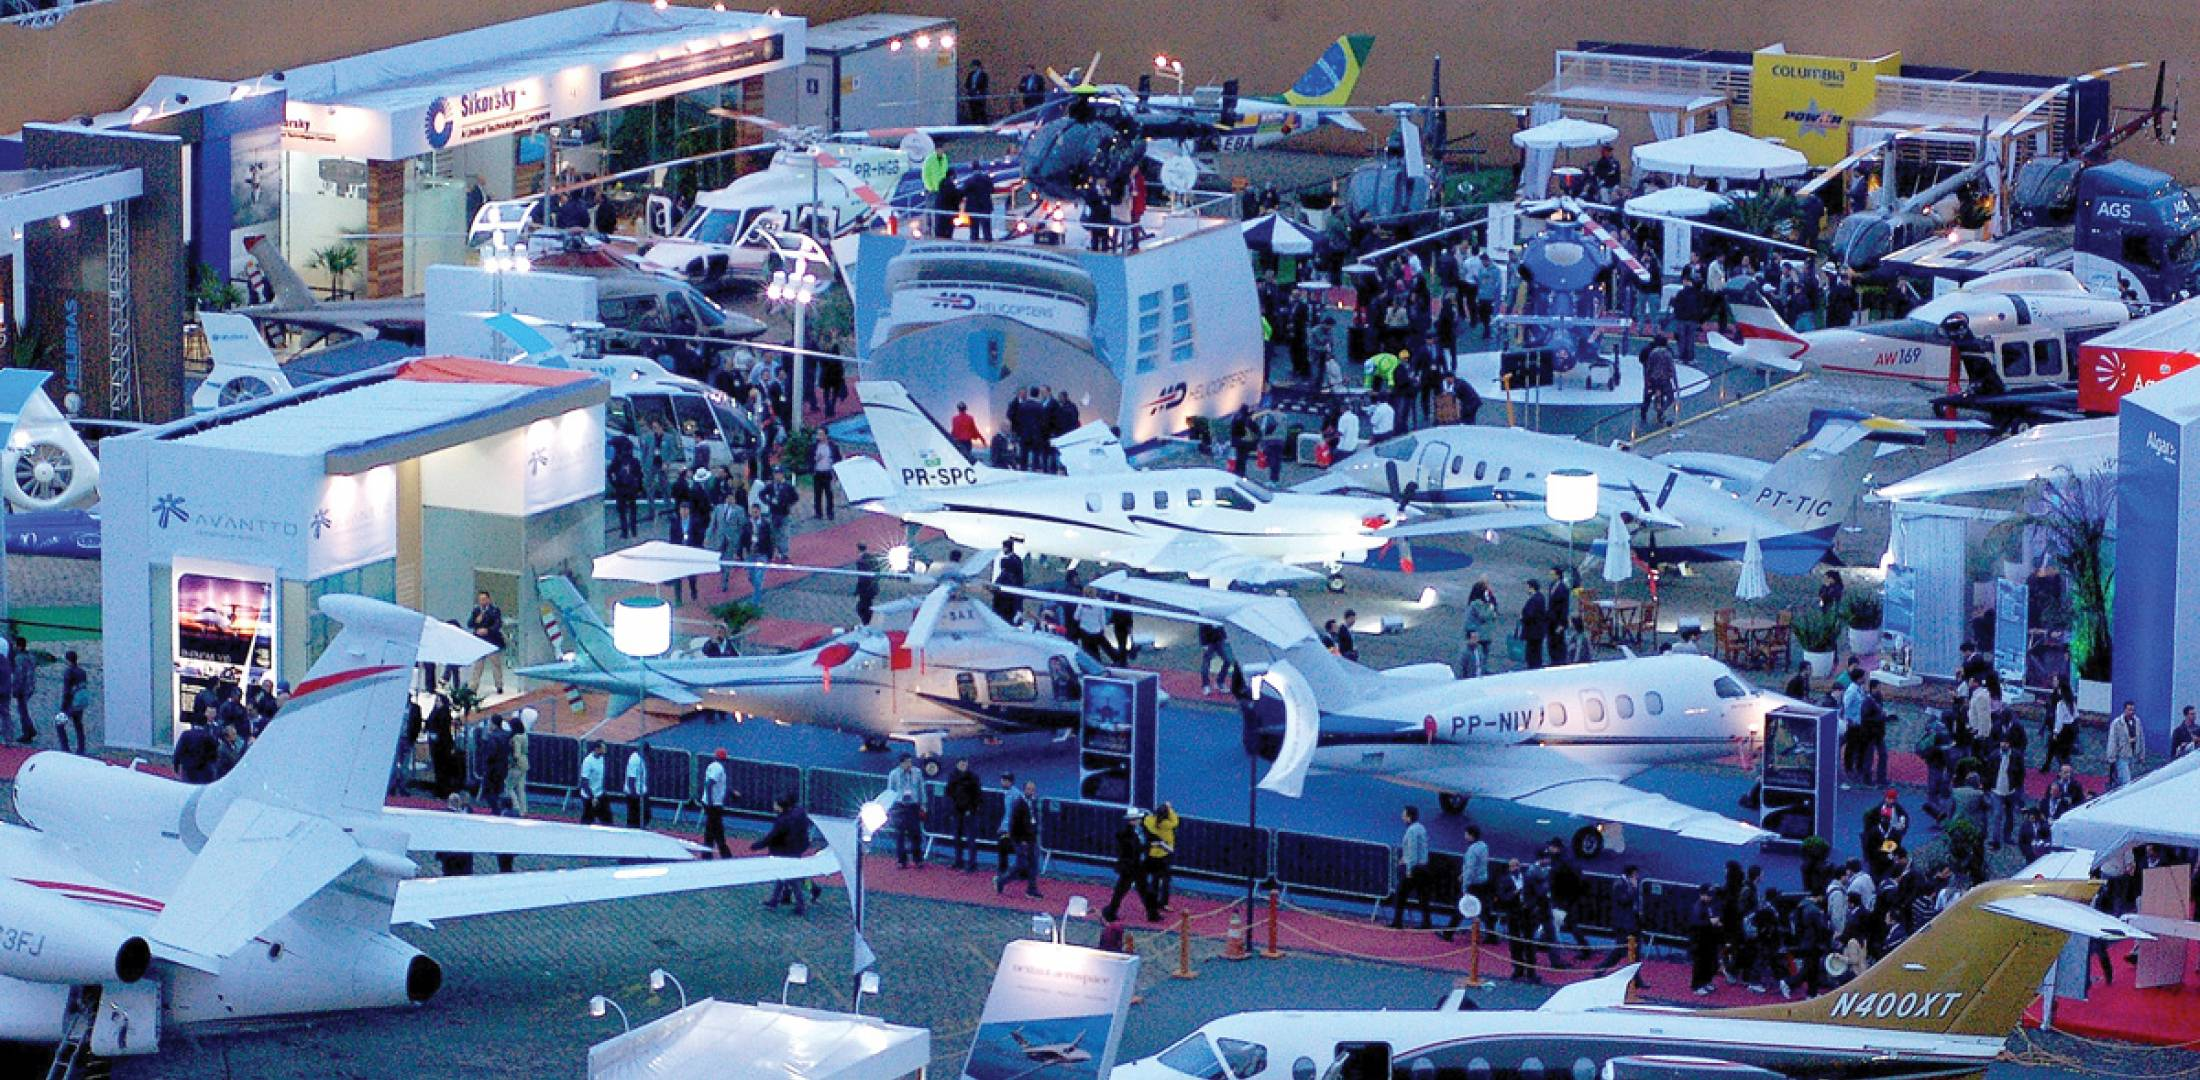 Packed to capacity, the static display at Congonhas Airport boasted 68 aircraft, ranging from piston singles to Embraer's ultra-large-cabin Lineage 1000 business jet.